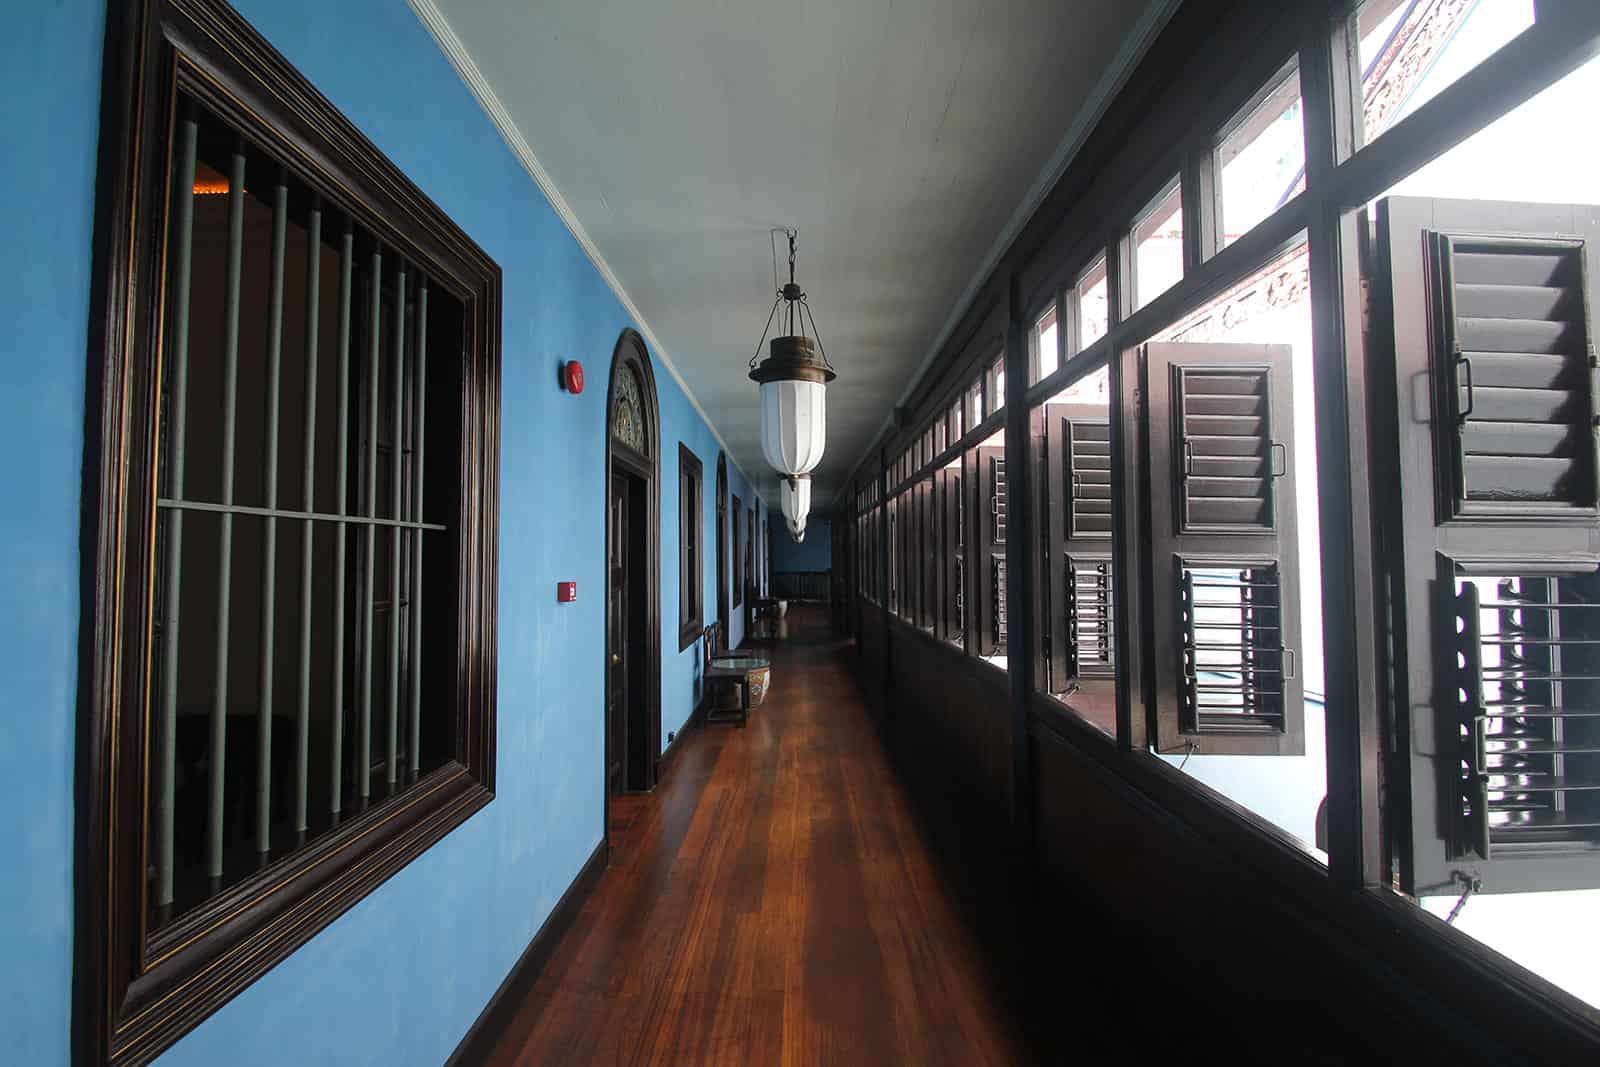 boutique-hotel-penang-island-blue-mansion-architecture-13_v2crmy Architecture